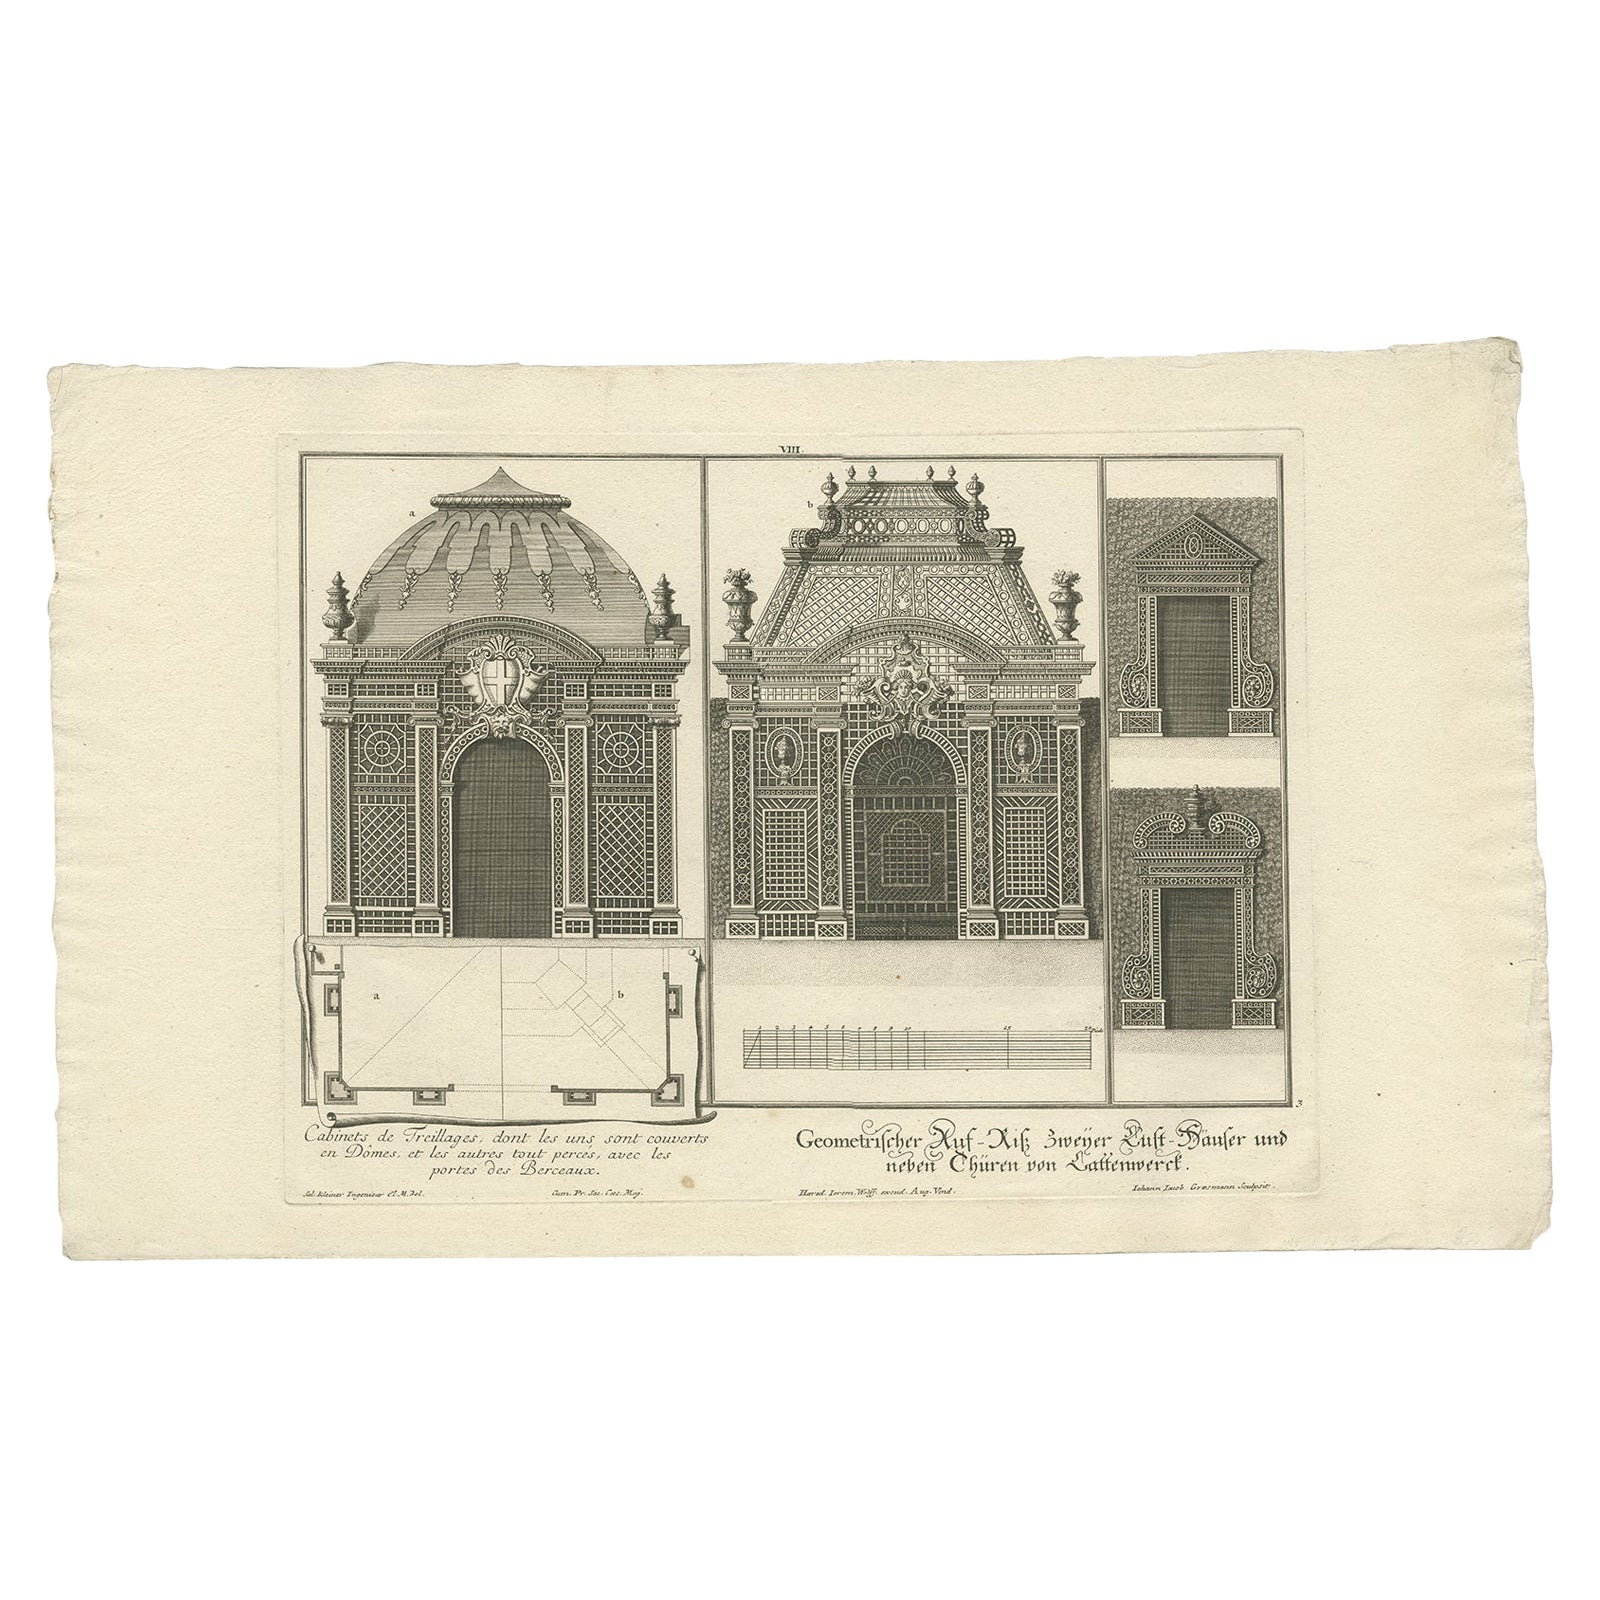 Antique Print of Two Pavilions and Gates by Wolff '1737'